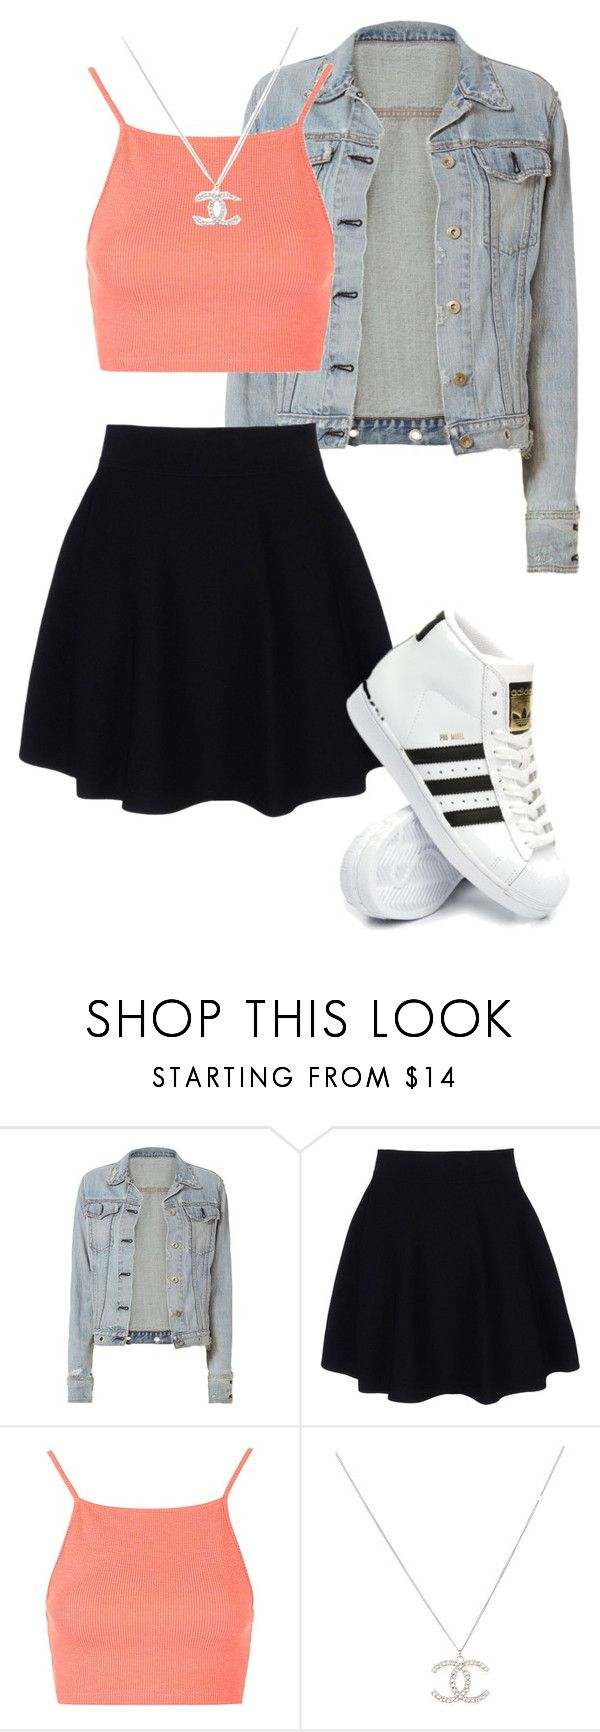 """Untitled #787"" by katiemiller-v on Polyvore featuring rag & bone, Theory, Topshop and adidas"